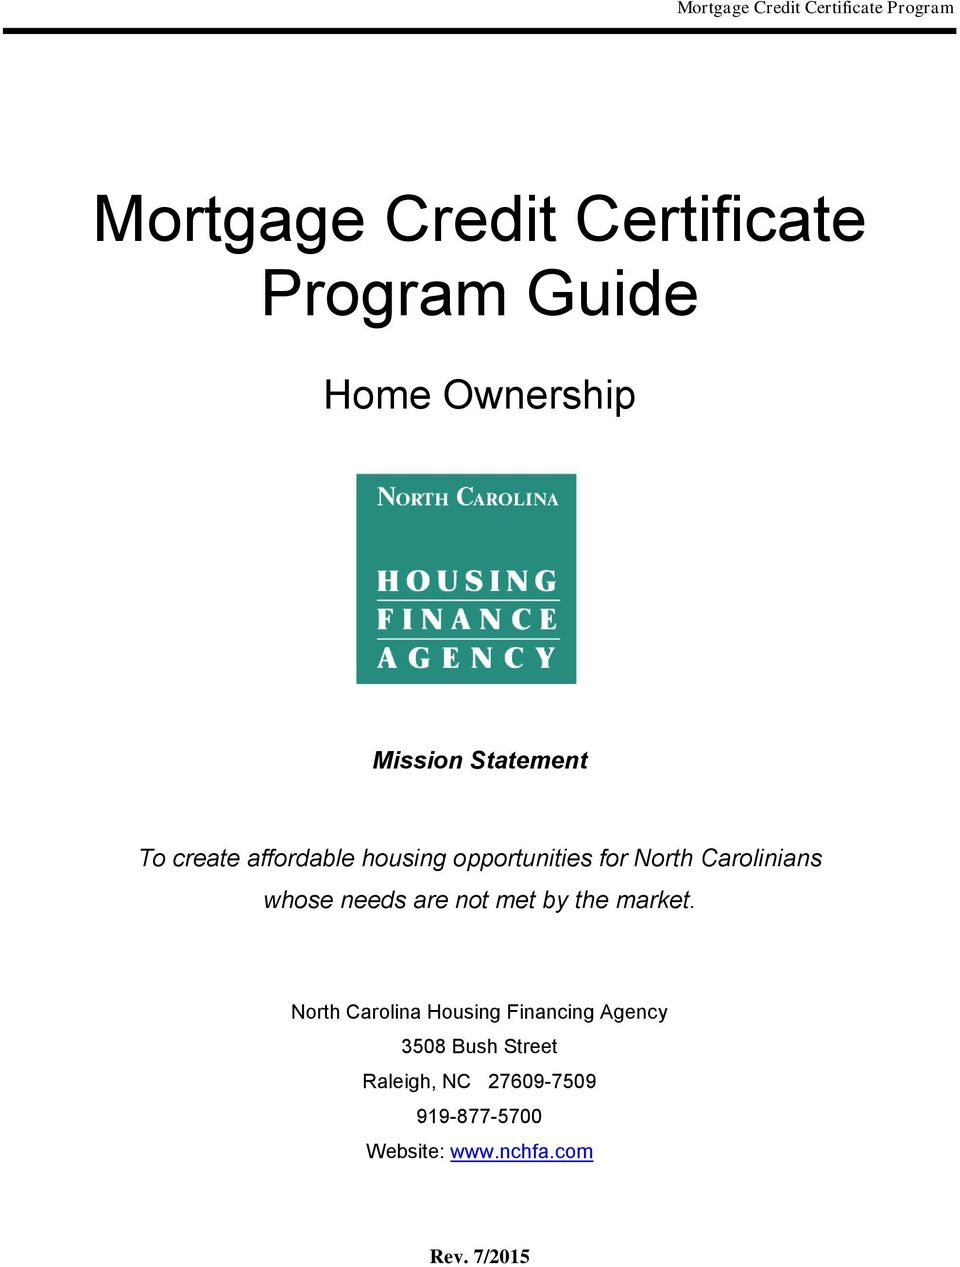 Mortgage Credit Certificate Program Guide Pdf